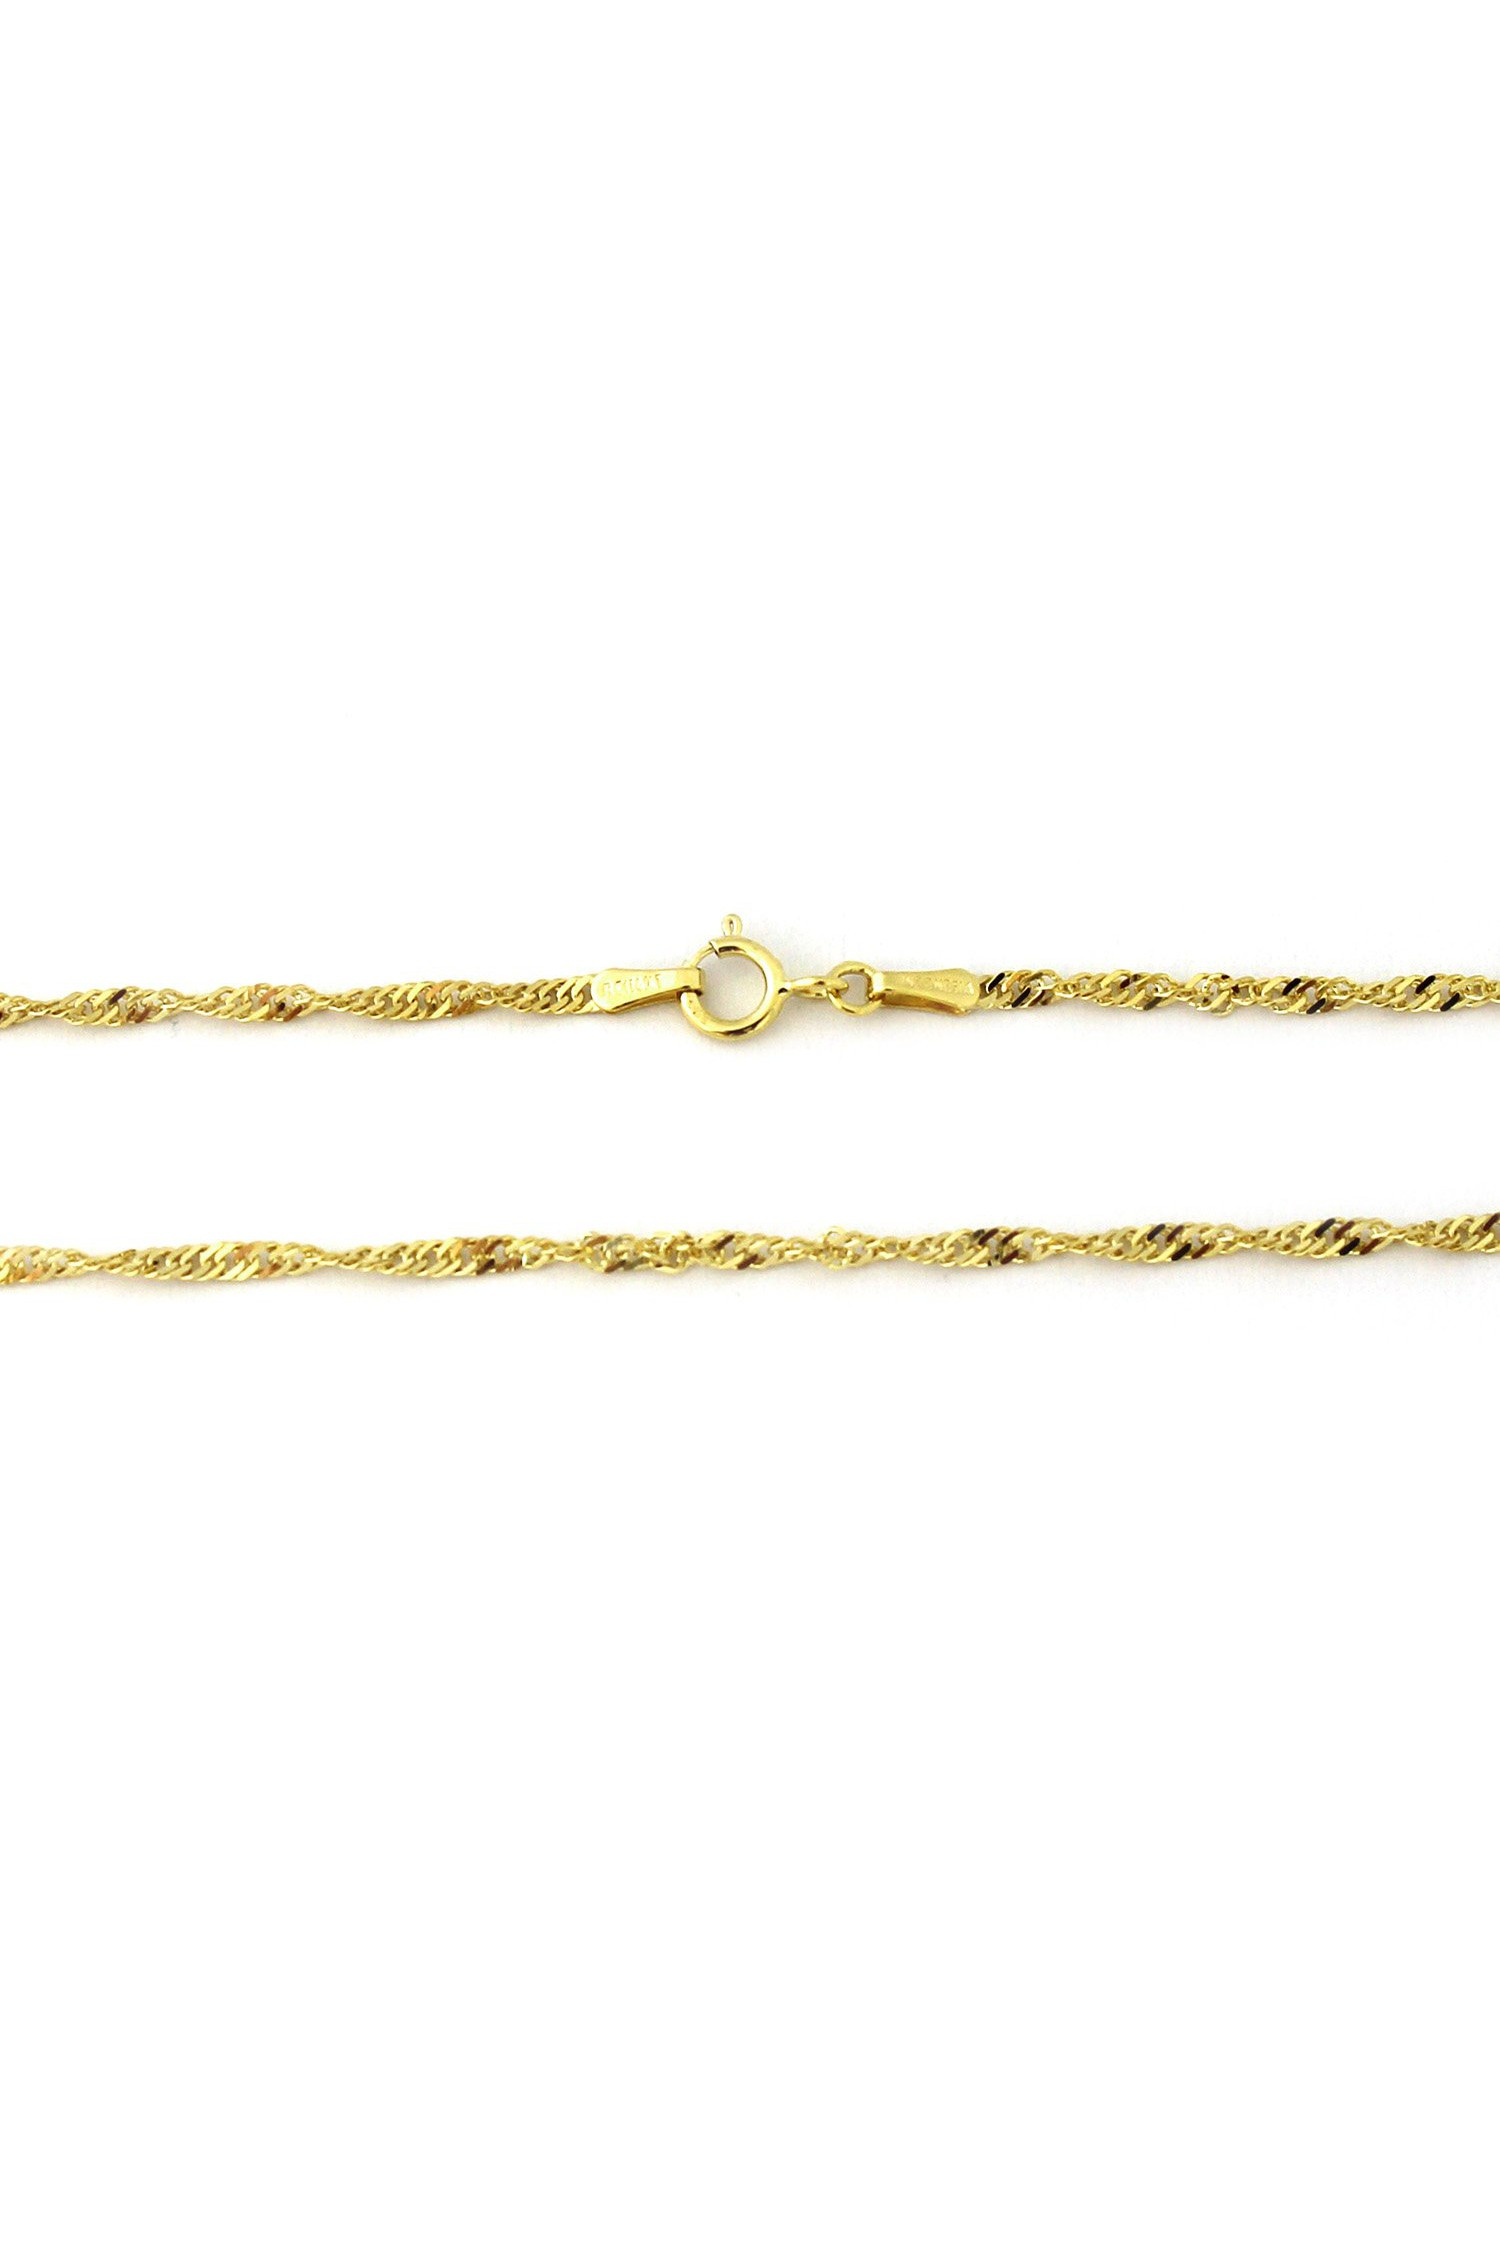 14Kt Gold Sparkle Singapore Chain With Lobster Lock 20 Inches Long Singapore Chain